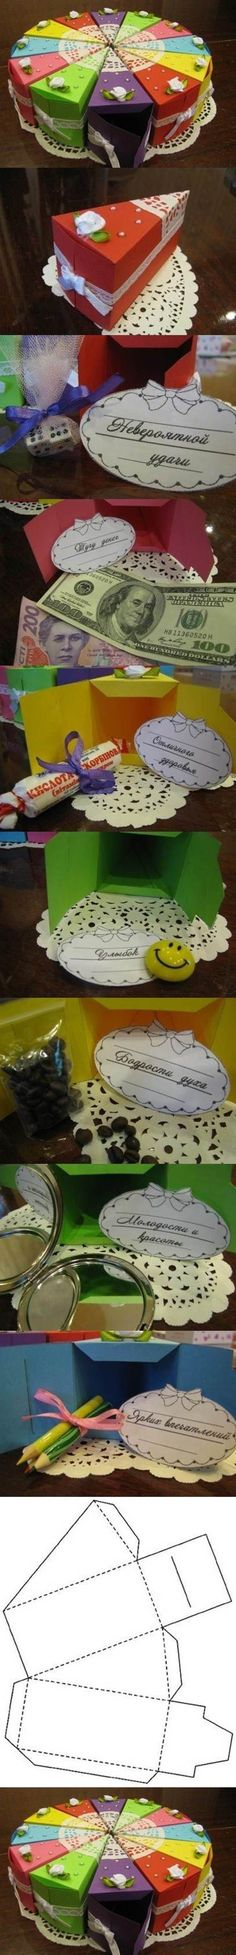 DIY Cake Shaped Gift Boxes Wouldn't this be cute for Primary Birthdays, YW Birthdays, etc? Diy And Crafts, Arts And Crafts, Paper Crafts, Wrapping Ideas, Gift Wrapping, Origami, Diy Cake, Creative Gifts, Creative Ideas